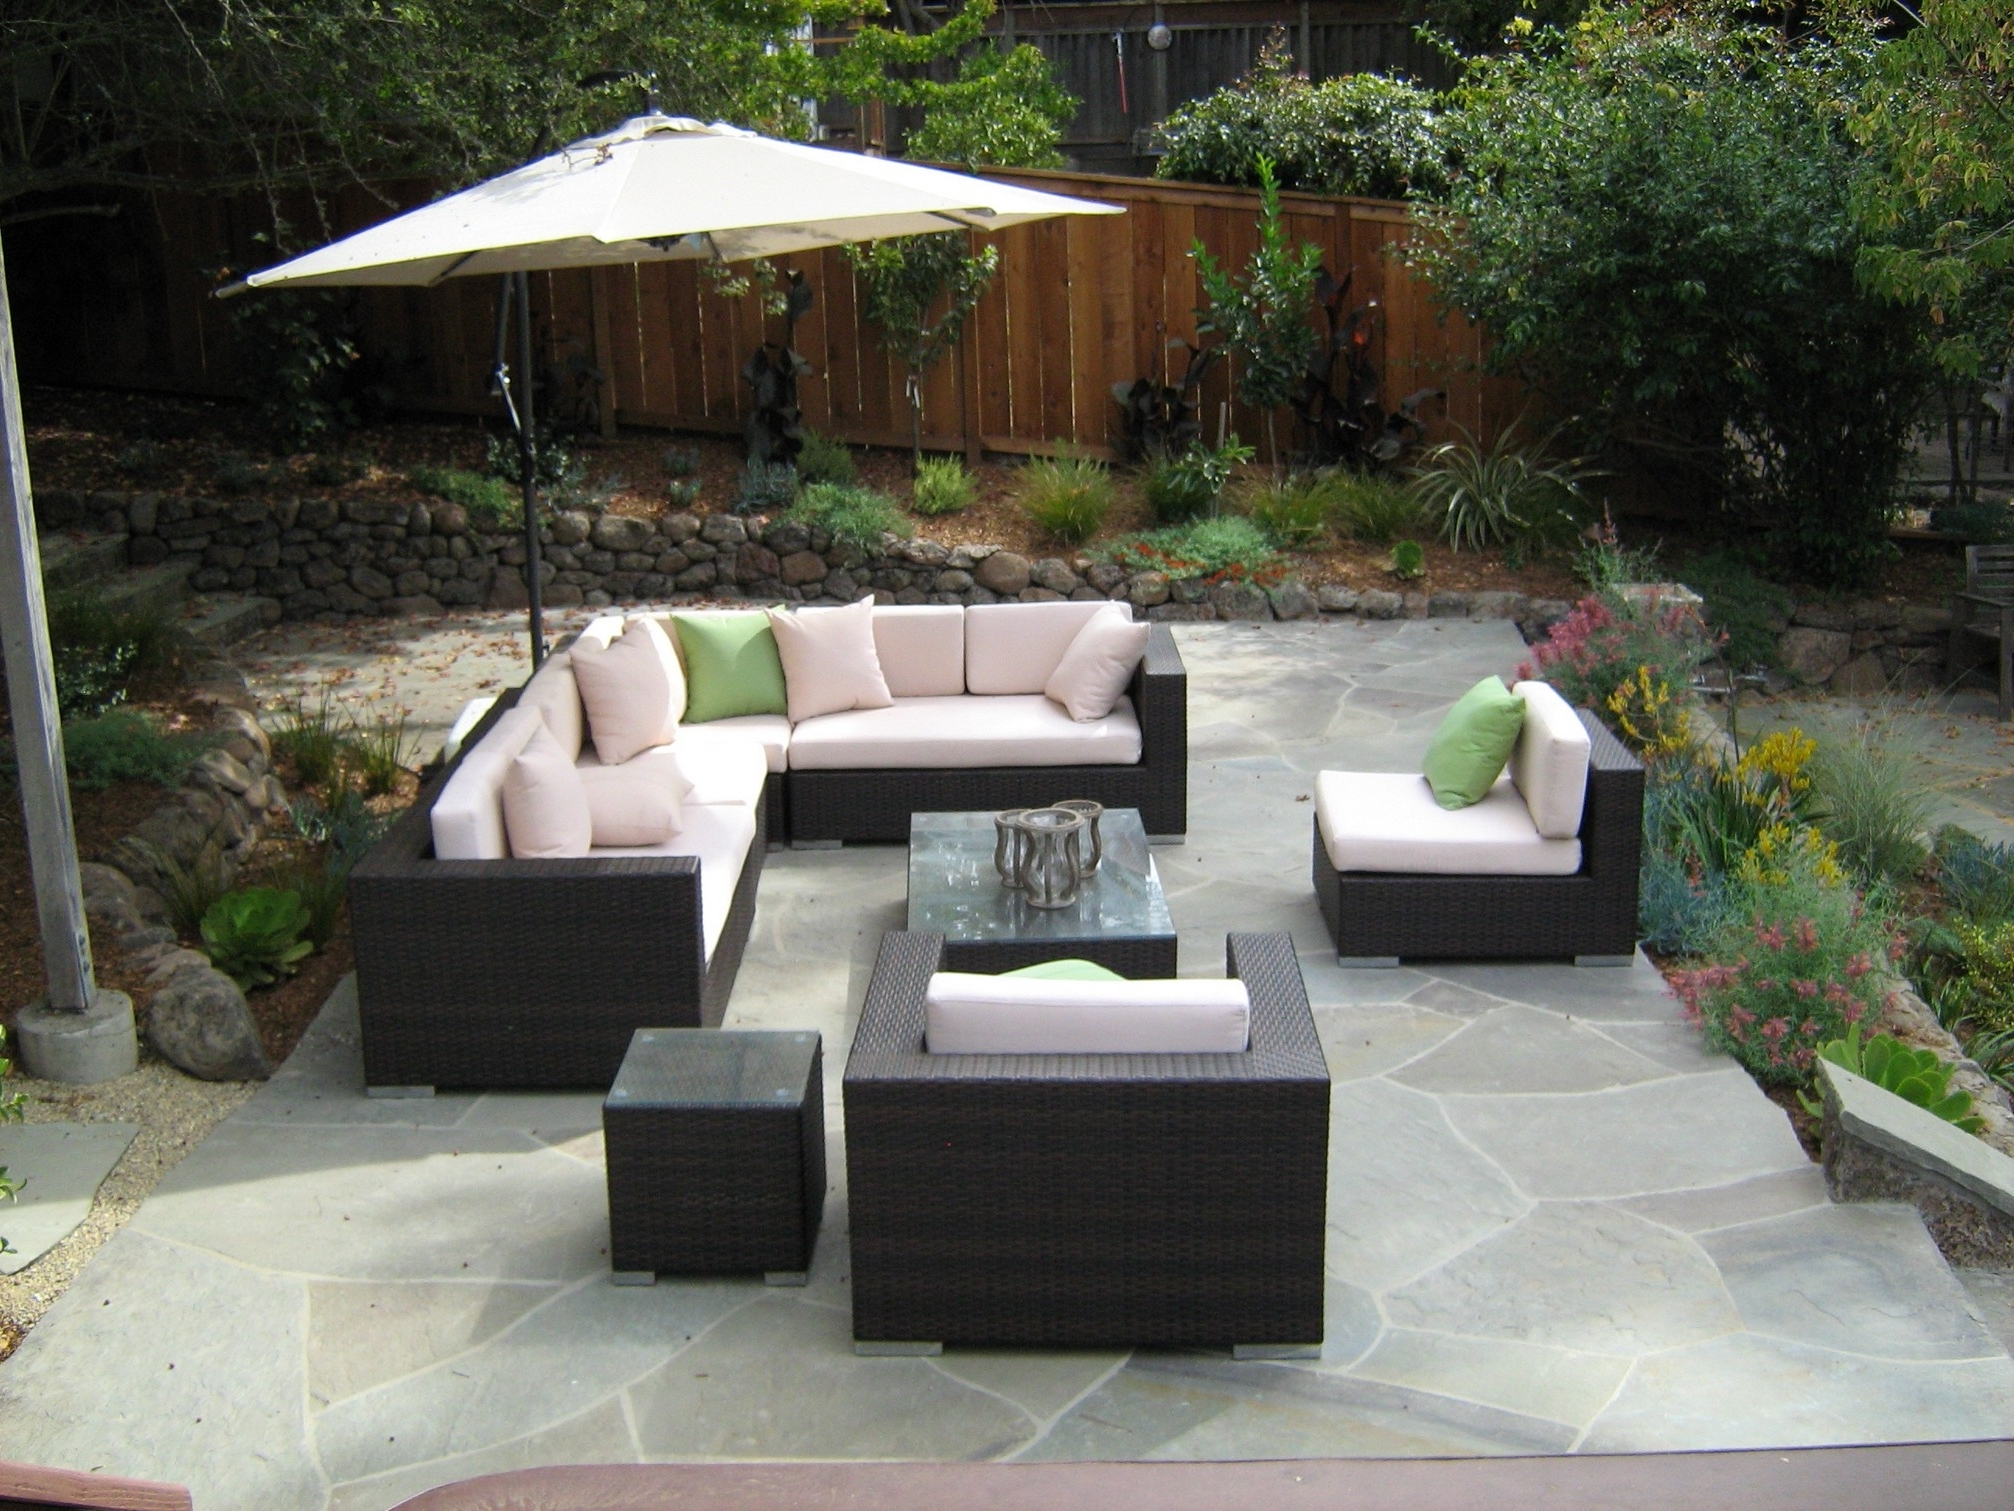 Patio : Small Patio Furniture Awesome Chair Fabulous Aluminum Patio Throughout Latest Patio Conversation Sets With Umbrella (View 8 of 15)